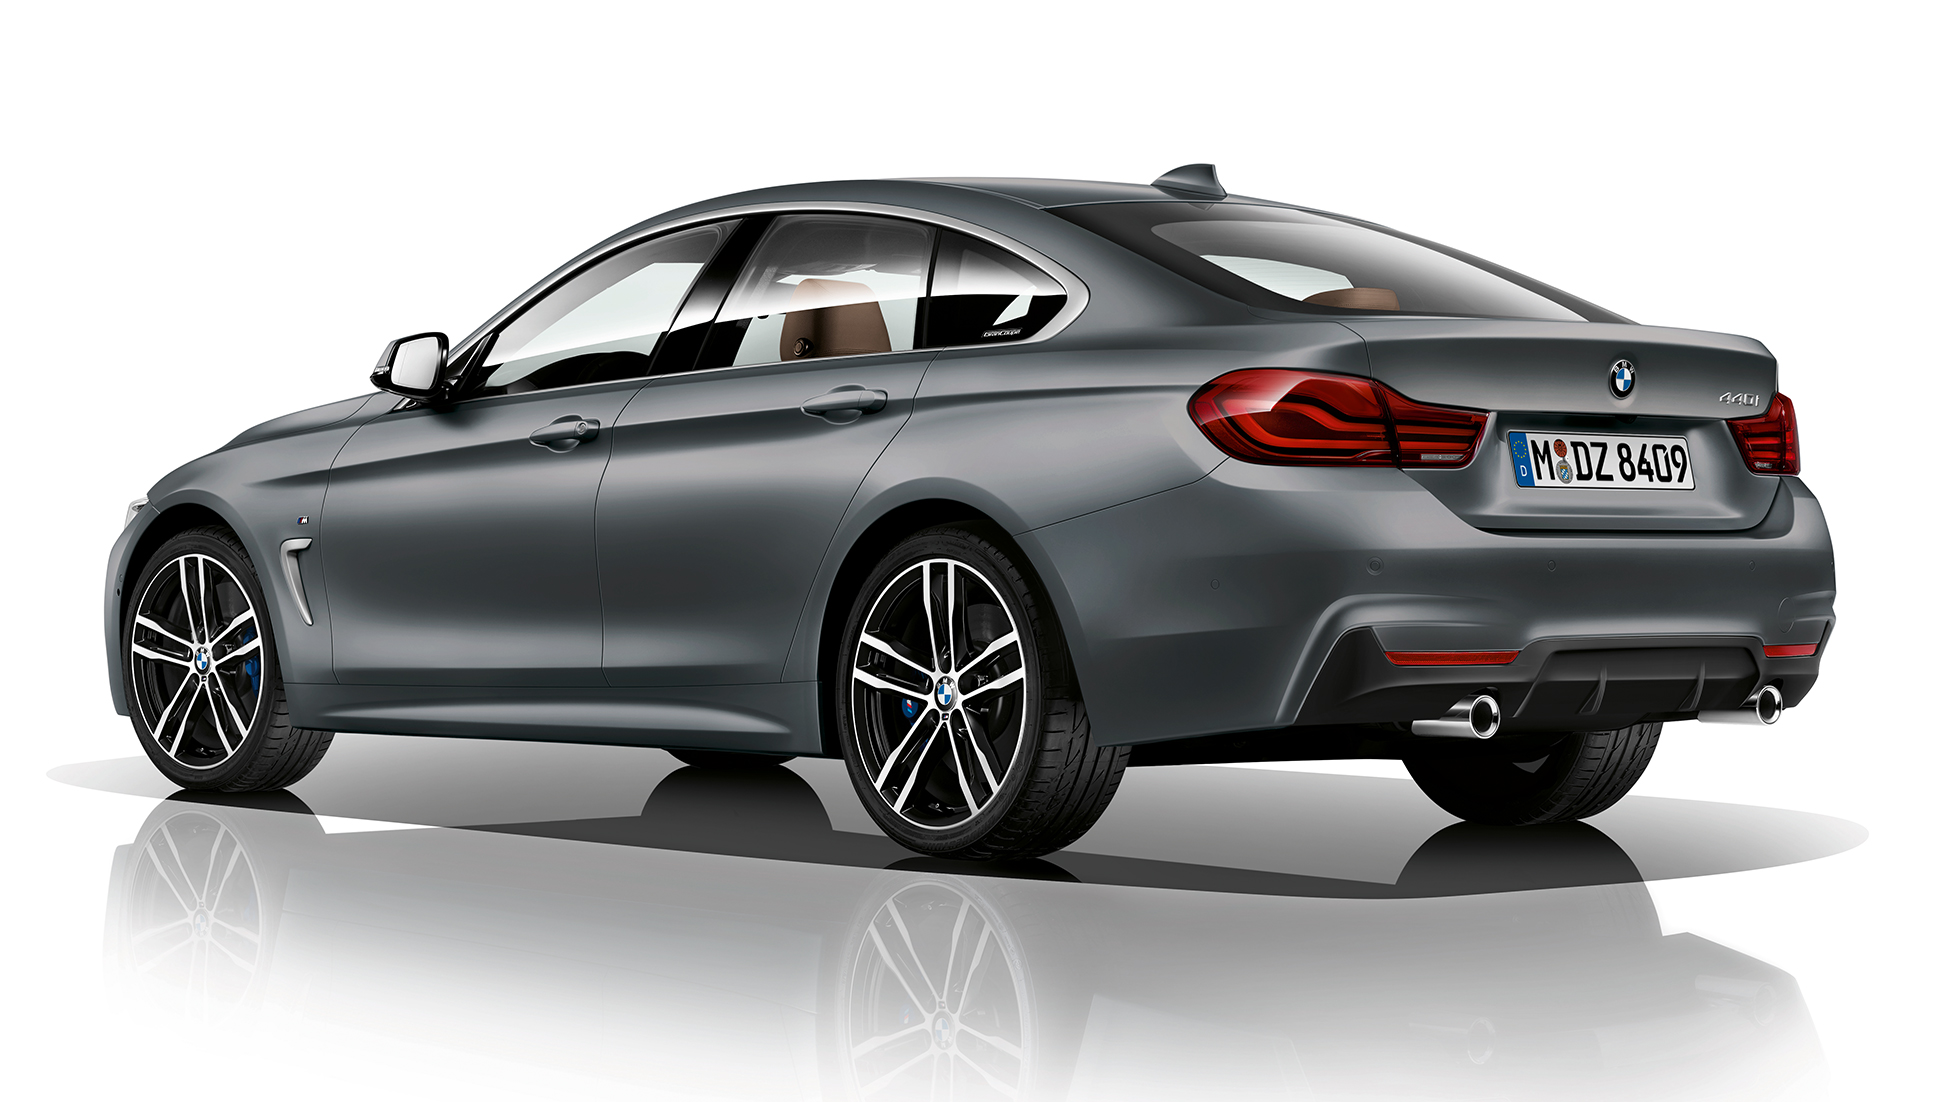 BMW 4 Series Gran Coupé, Model M Sport three-quarter rear shot